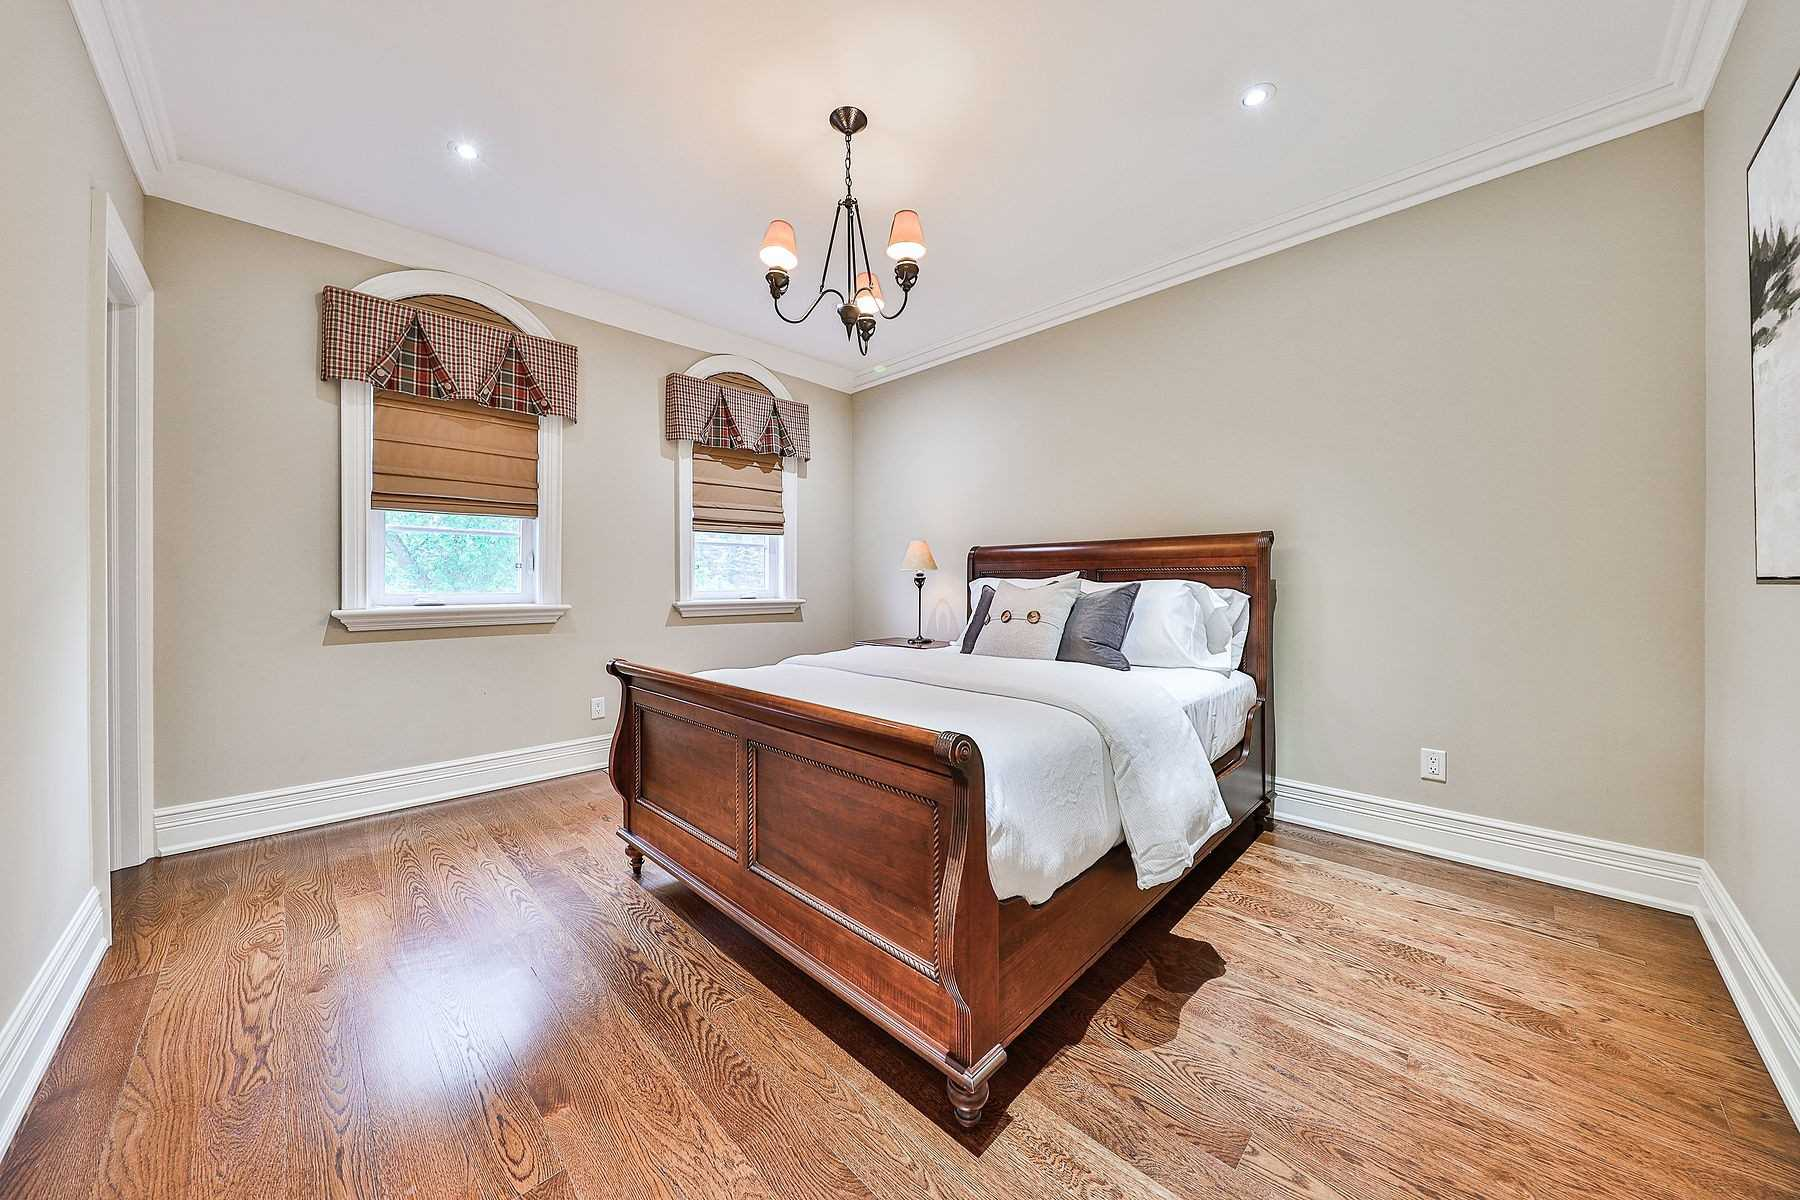 Detached house For Sale In Vaughan - 8477 Islington Ave, Vaughan, Ontario, Canada L4L 1X3 , 5 Bedrooms Bedrooms, ,4 BathroomsBathrooms,Detached,For Sale,Islington